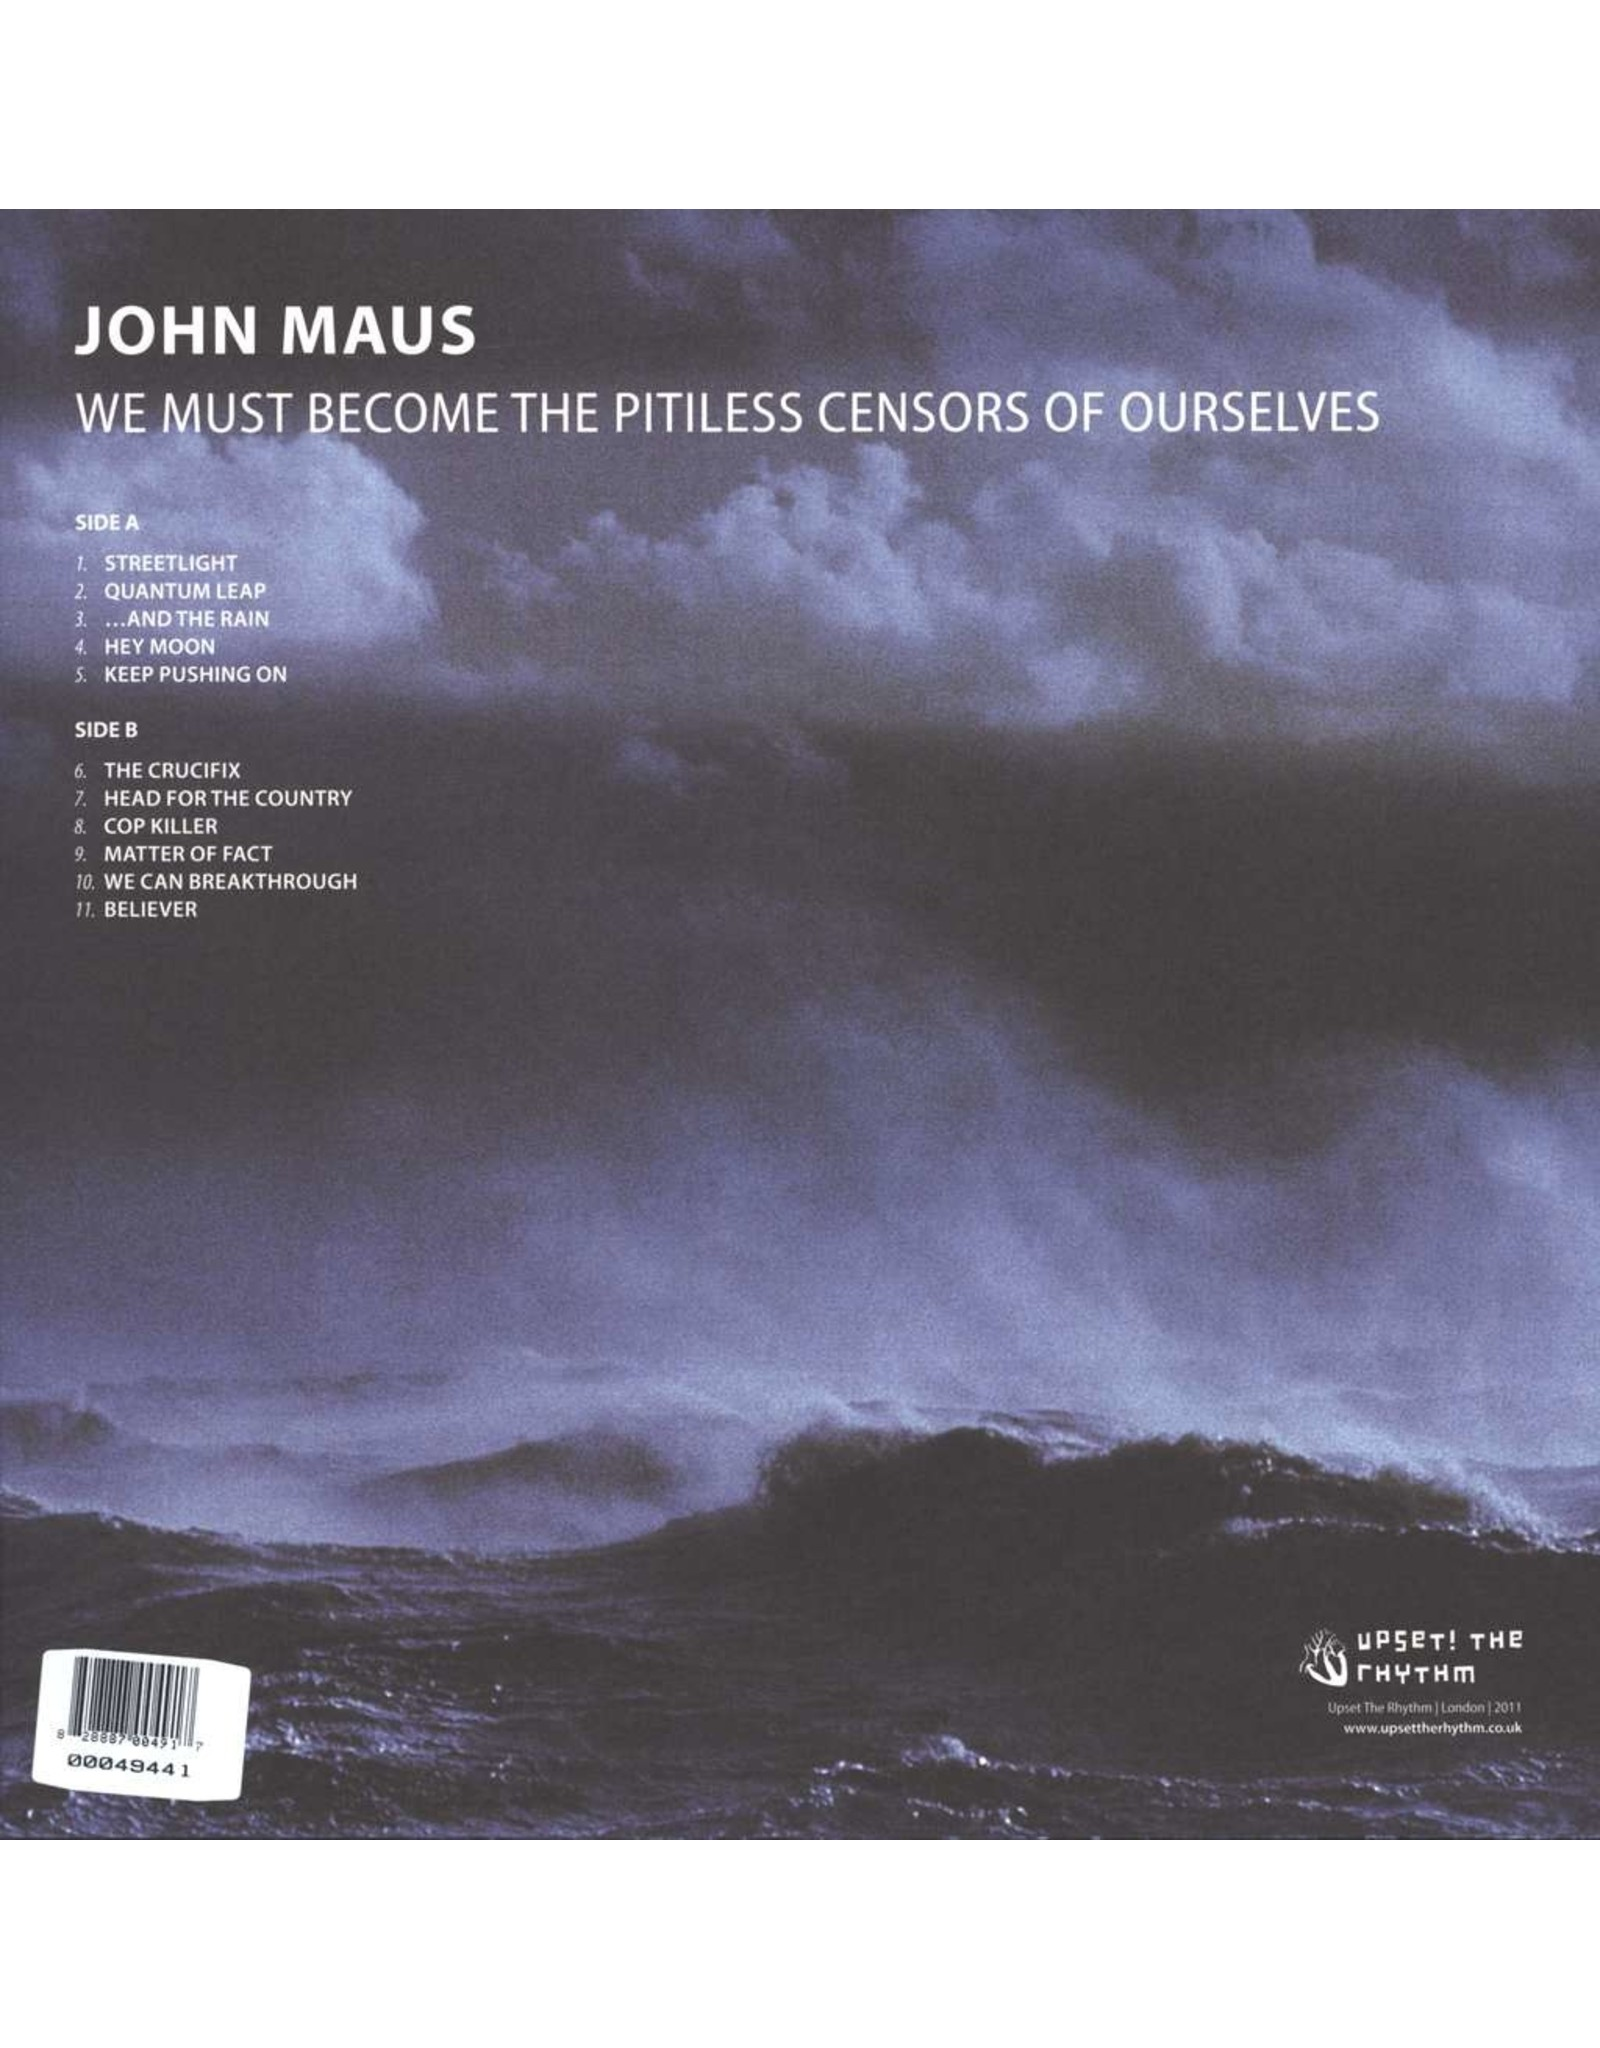 John Maus - We Must Become the Pitiless Censors of Ourselves